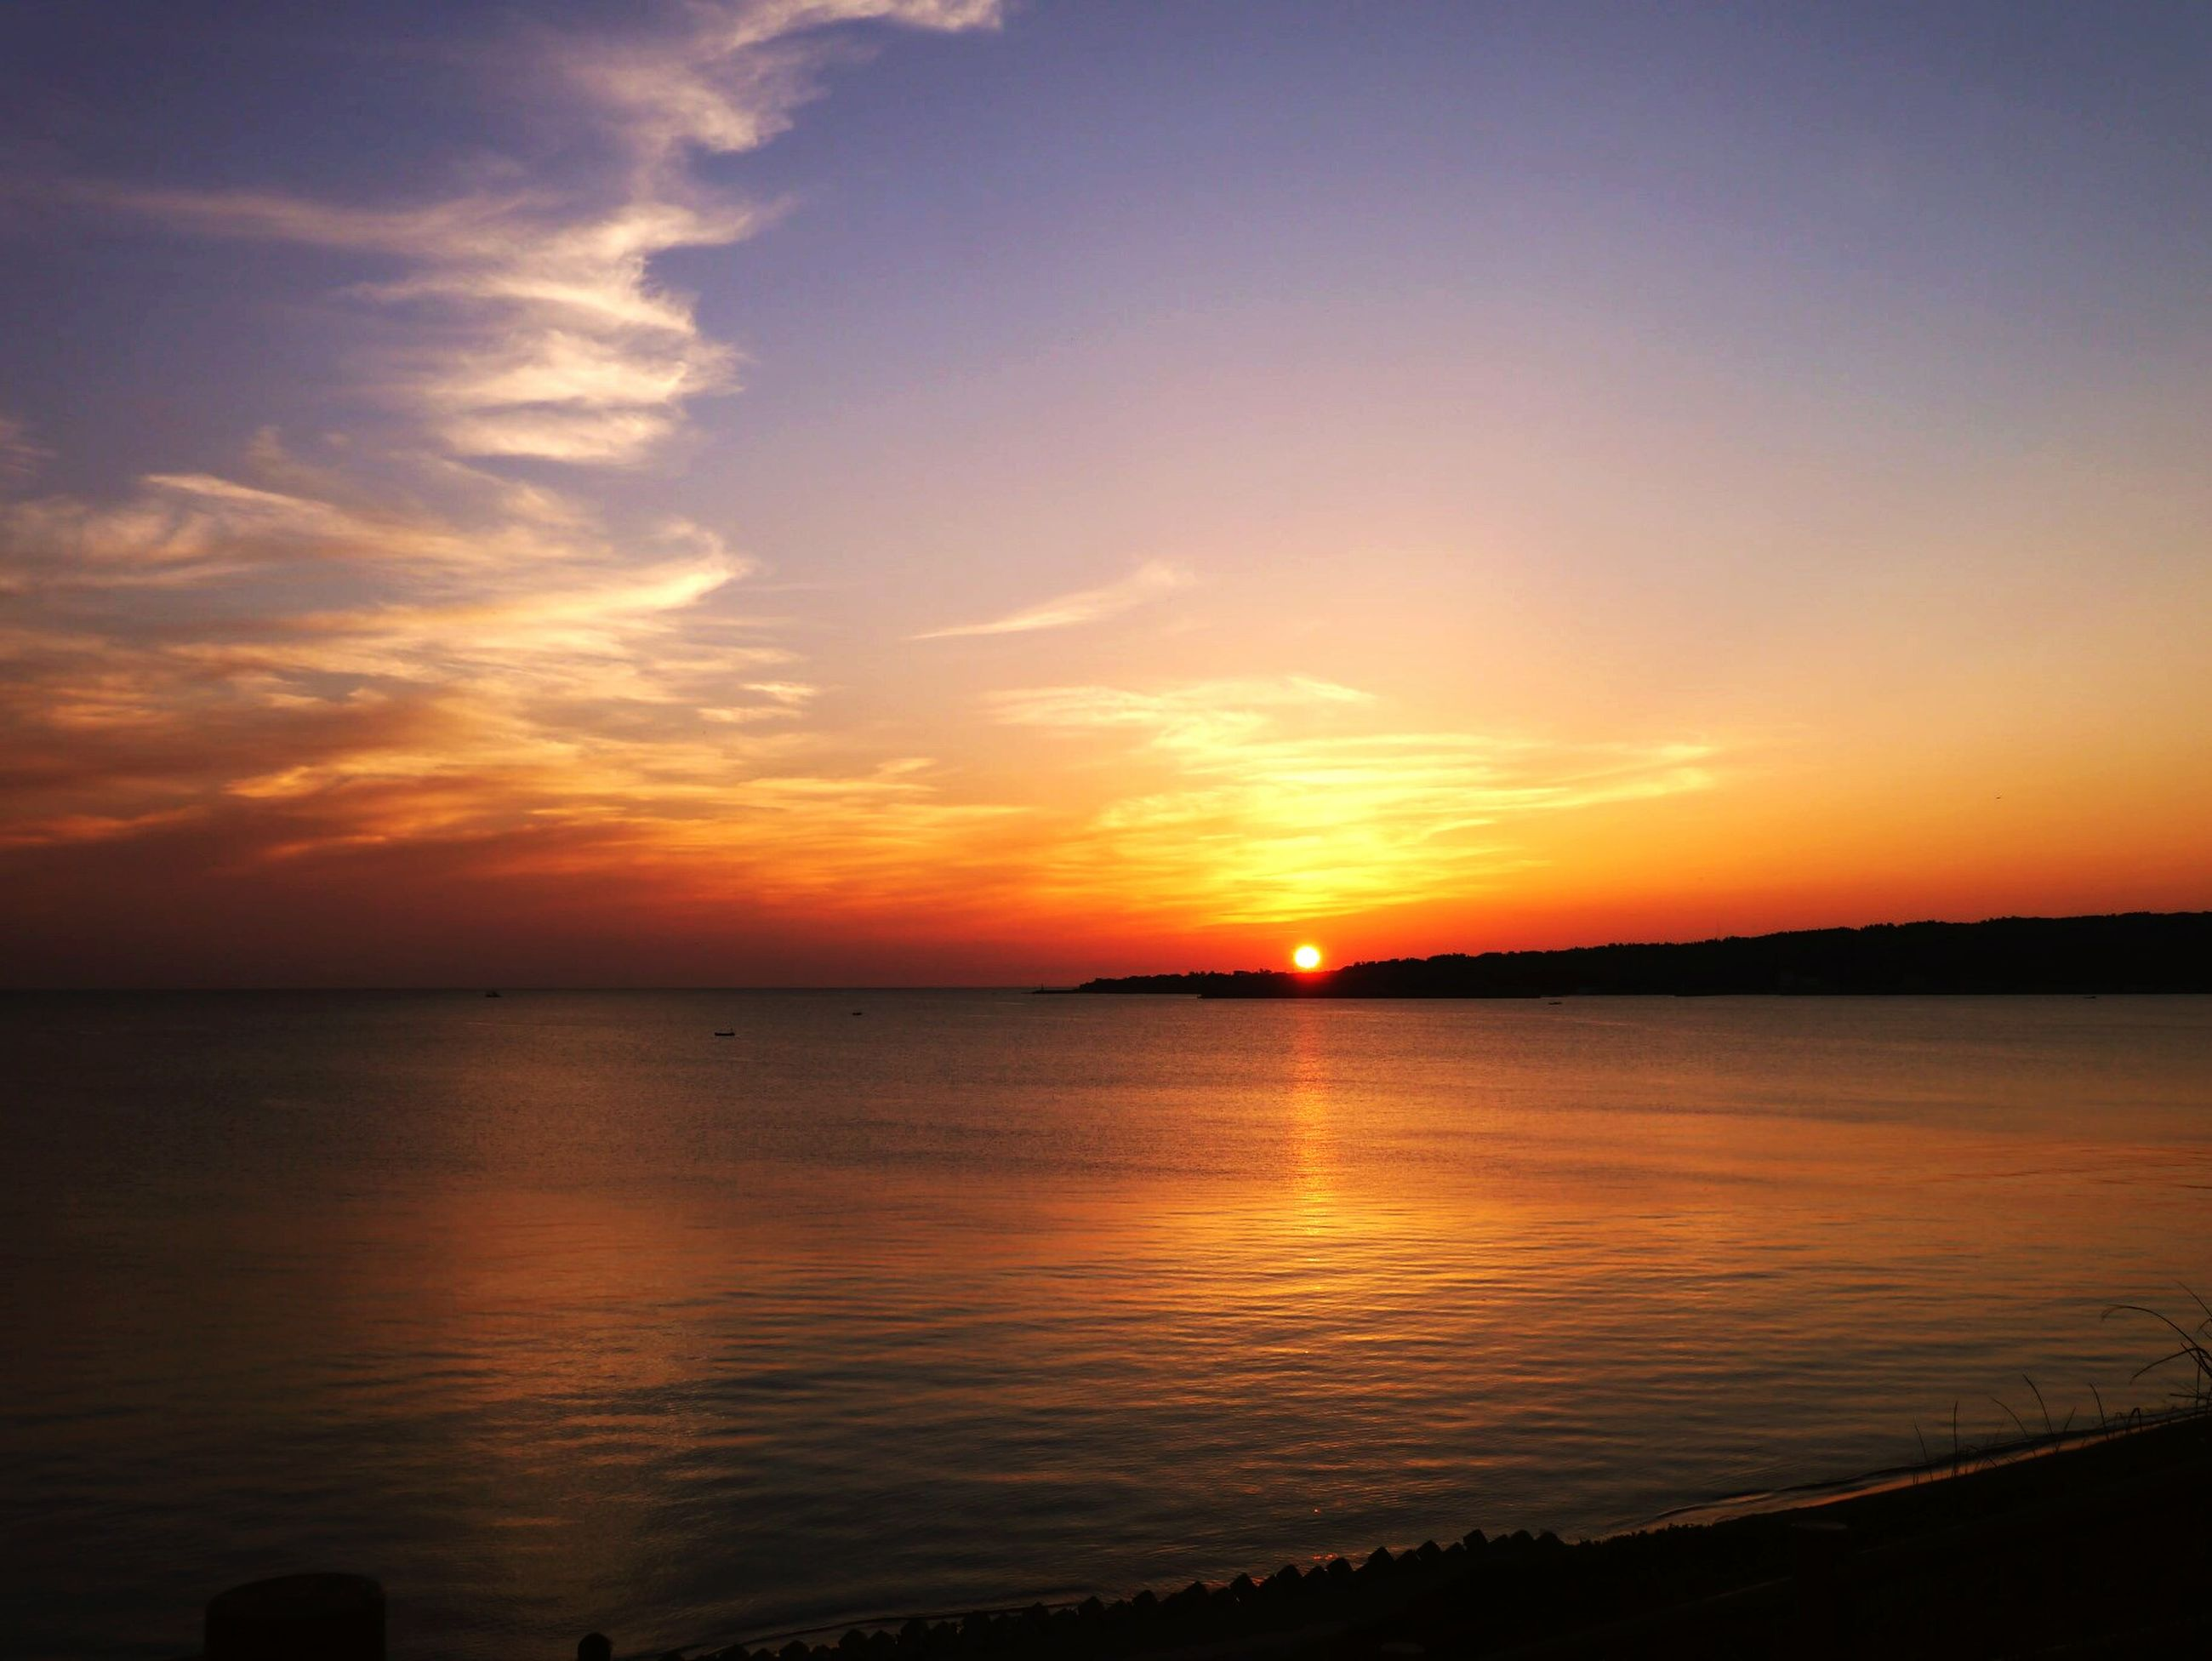 sunset, water, scenics, tranquil scene, sea, tranquility, beauty in nature, orange color, horizon over water, sky, reflection, idyllic, nature, sun, silhouette, beach, cloud - sky, outdoors, calm, cloud